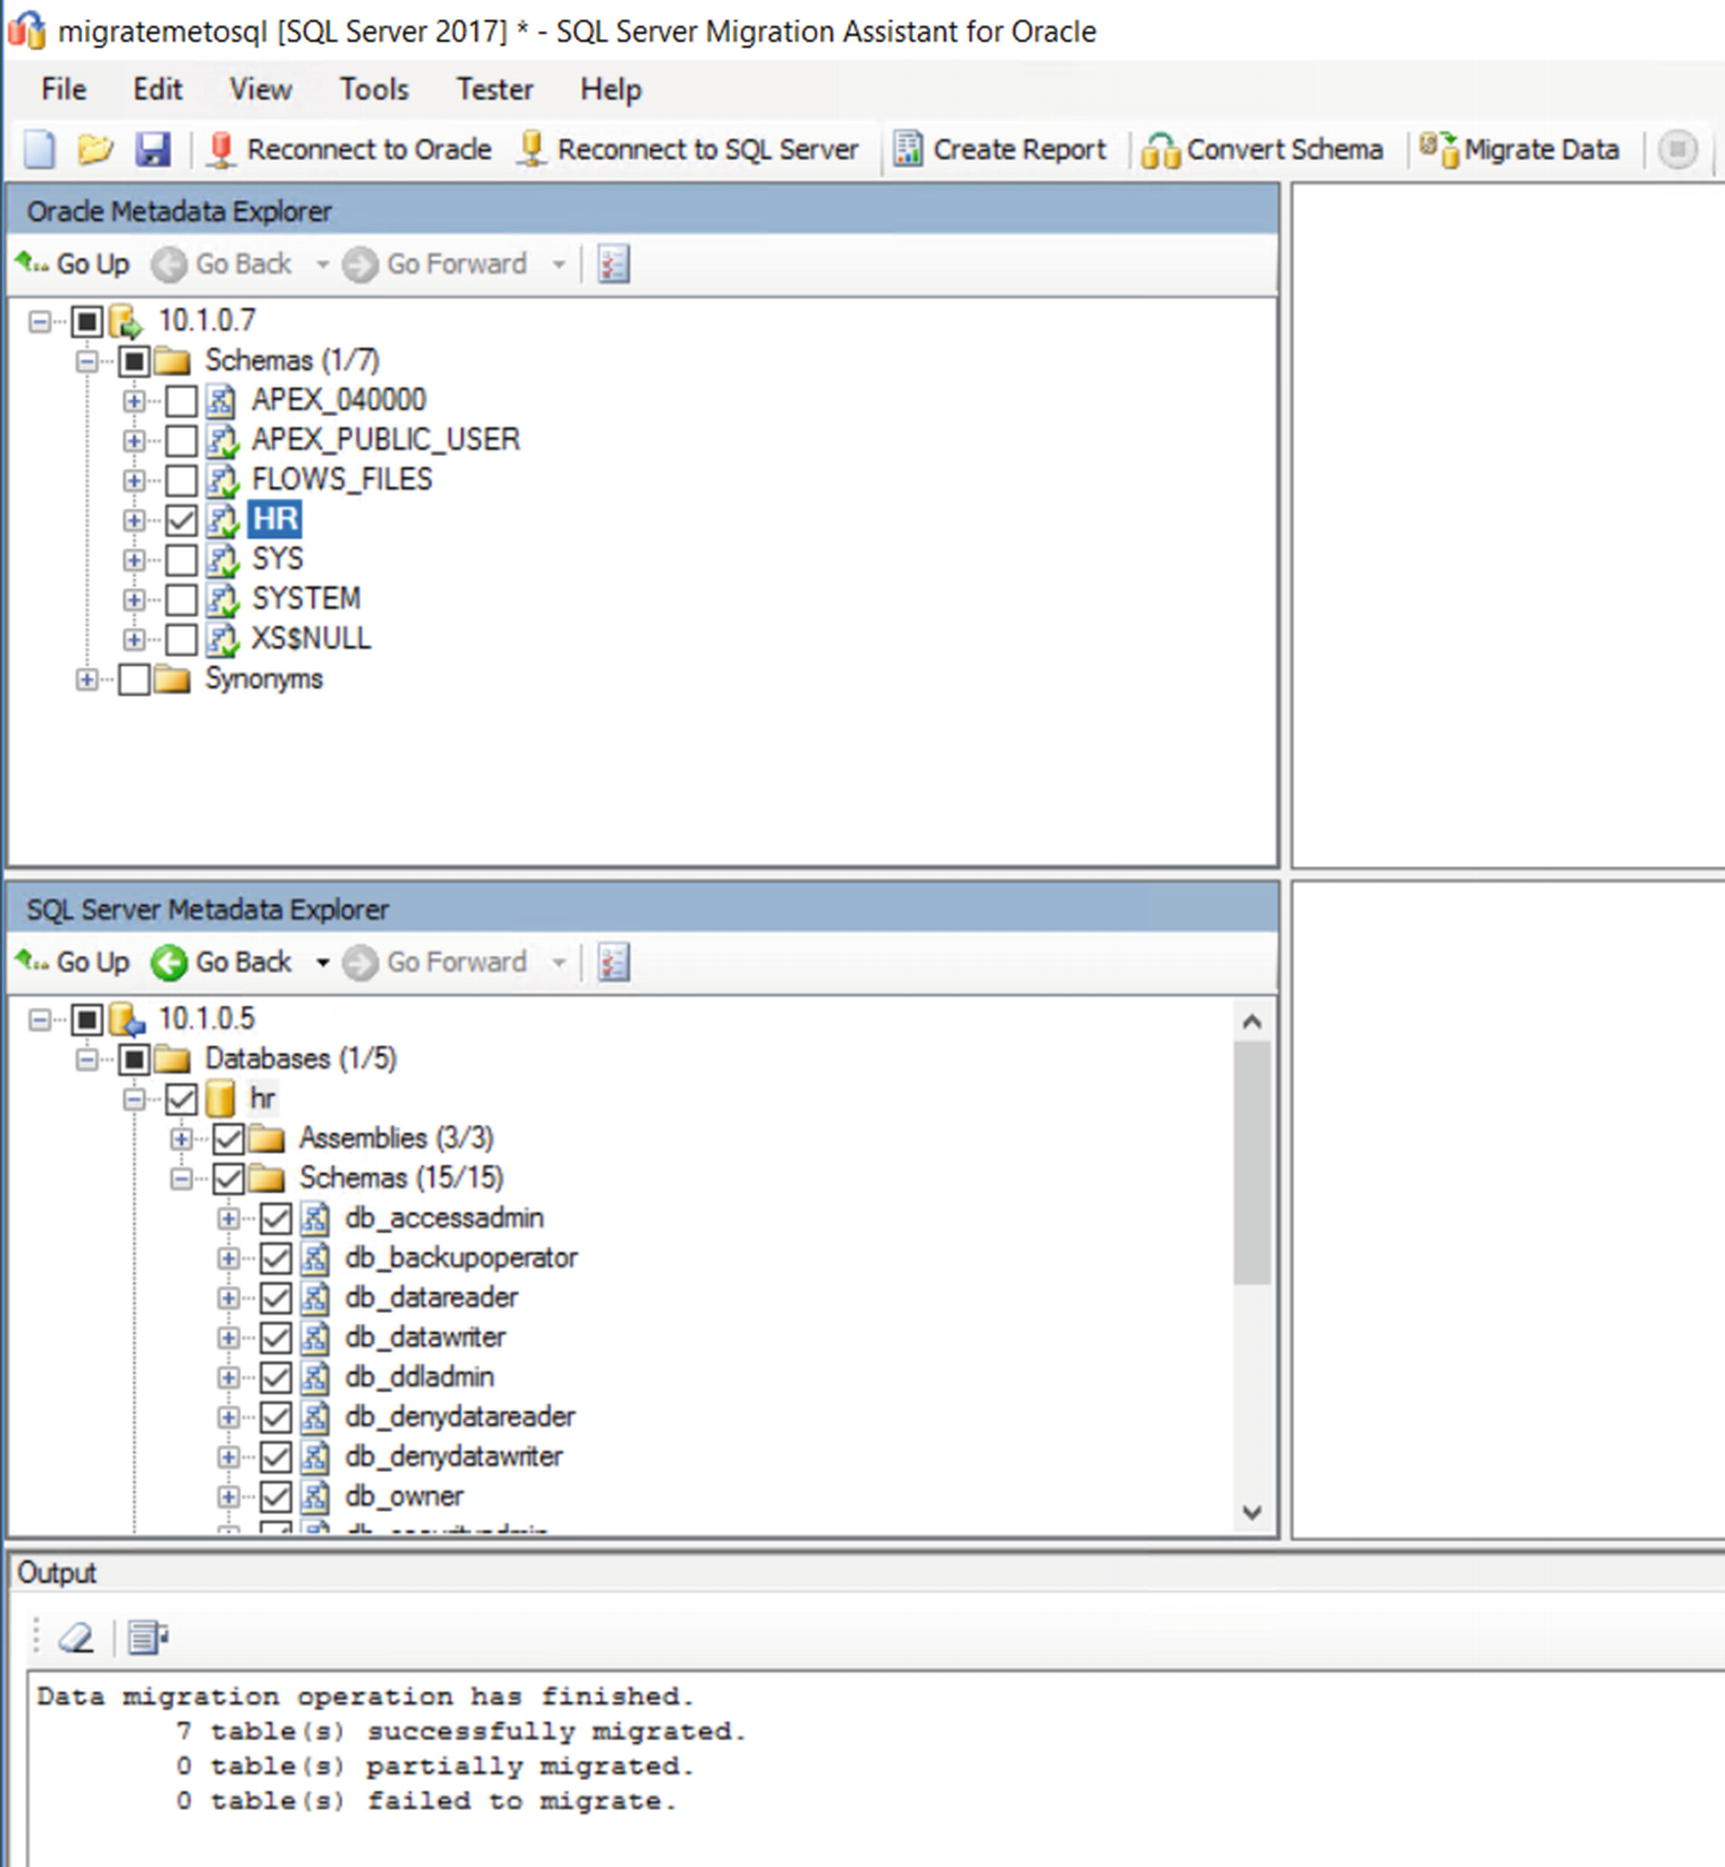 All of the following are stages of sql processing except